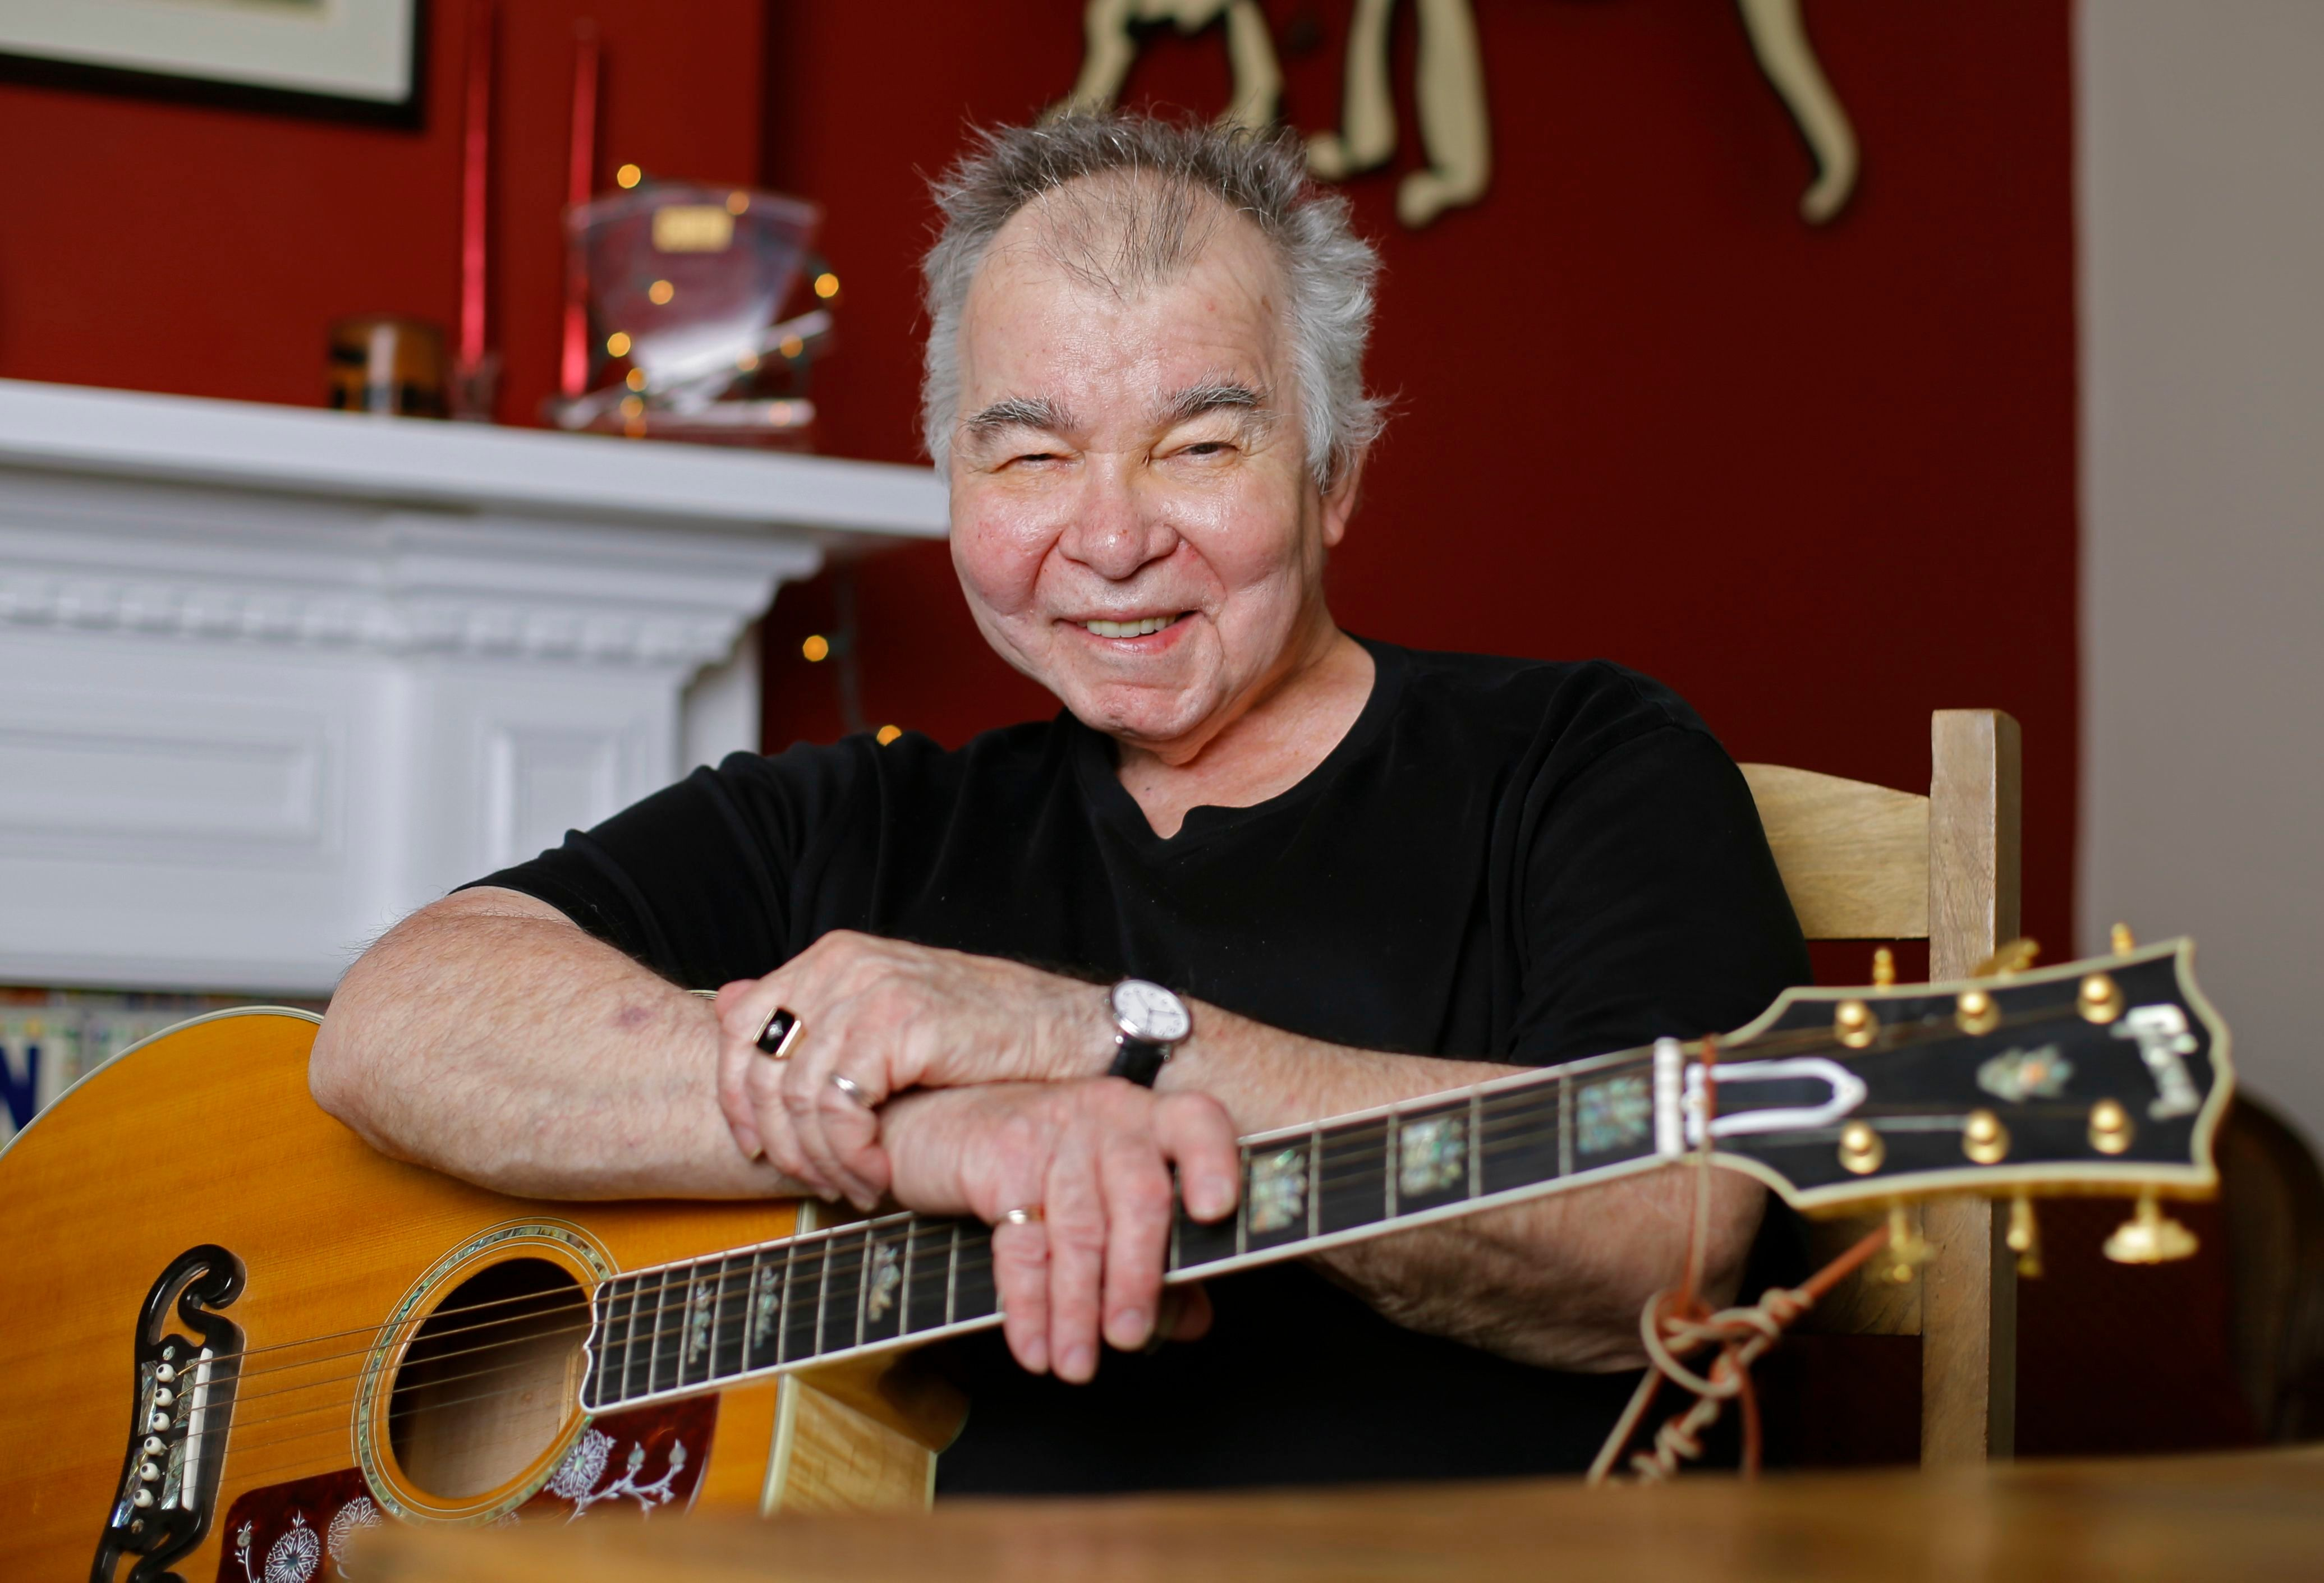 "John Prine poses in his office in Nashville, Tenn. The former Chicago mailman has become an affable songwriting guru for many of Nashville's talented young artists and his songbook, ""Beyond Words,"" released in April, features guitar chords, family photos, handwritten lyrics and witty stories alongside some of his best known songs, such as ""Sam StoneMusic John Prine, Nashville, USA - 20 Jun 2017"